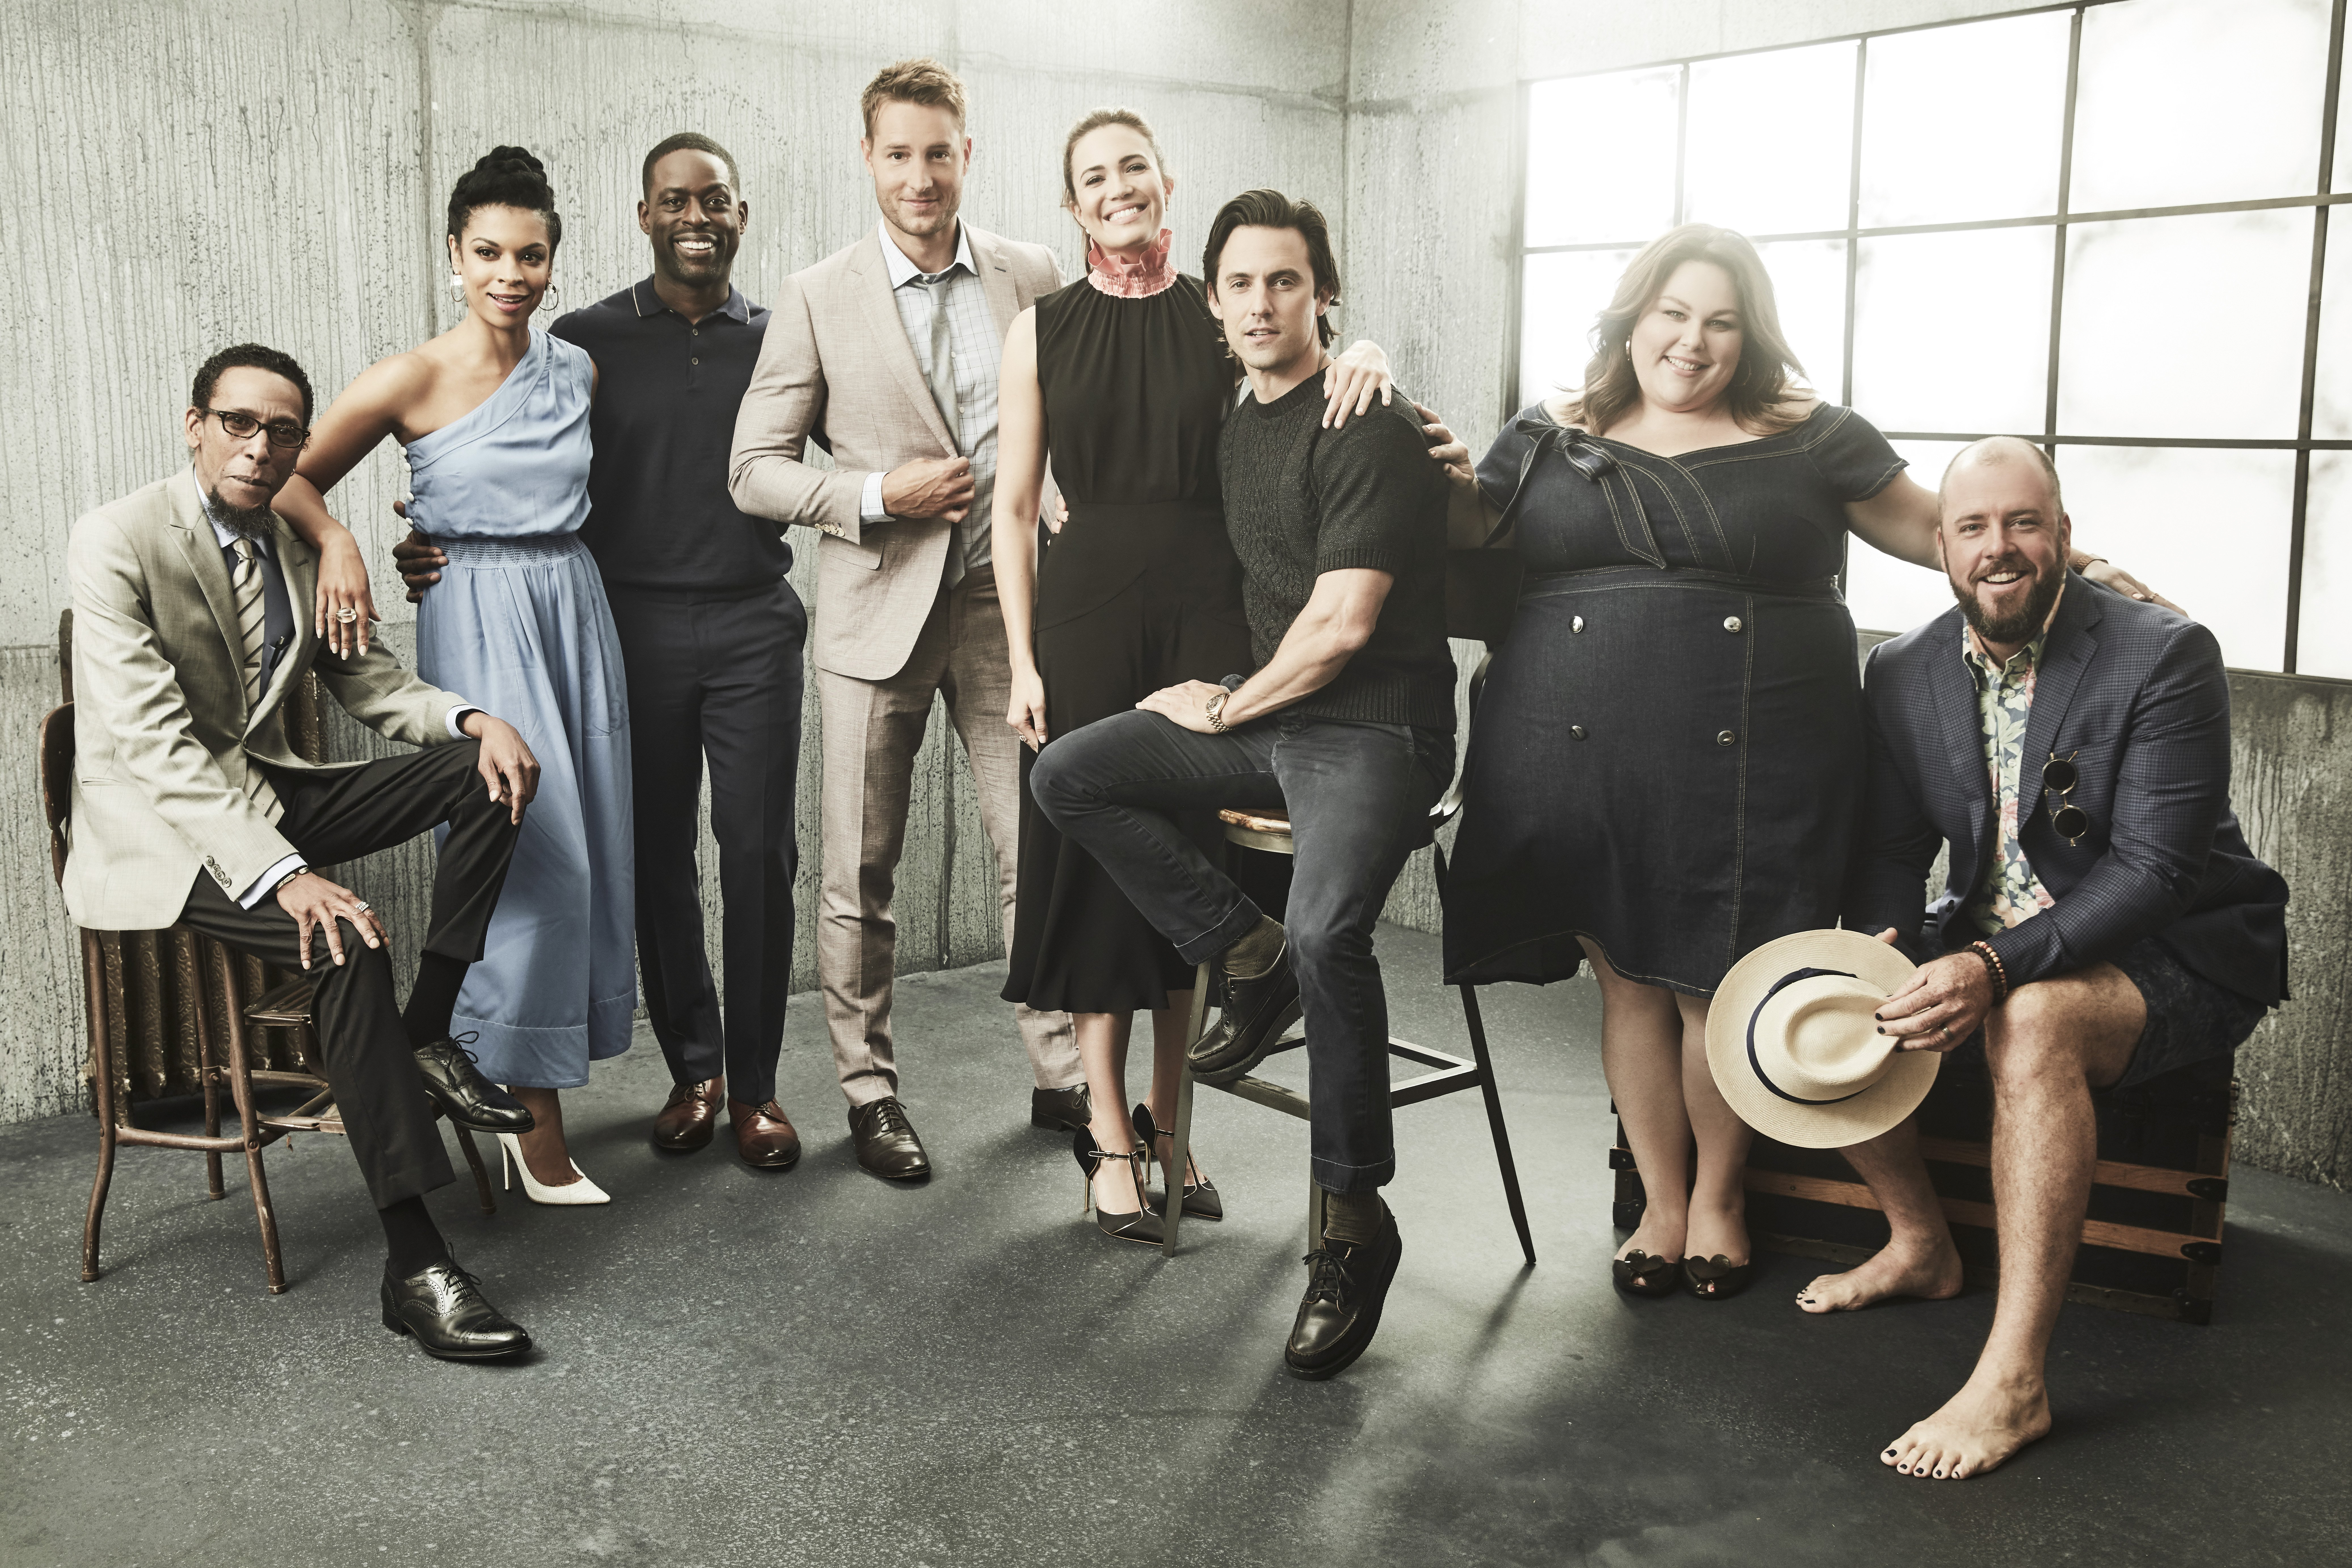 Image Source: Getty Images/NBC/This Is Us | The cast in their photoshoot with Today